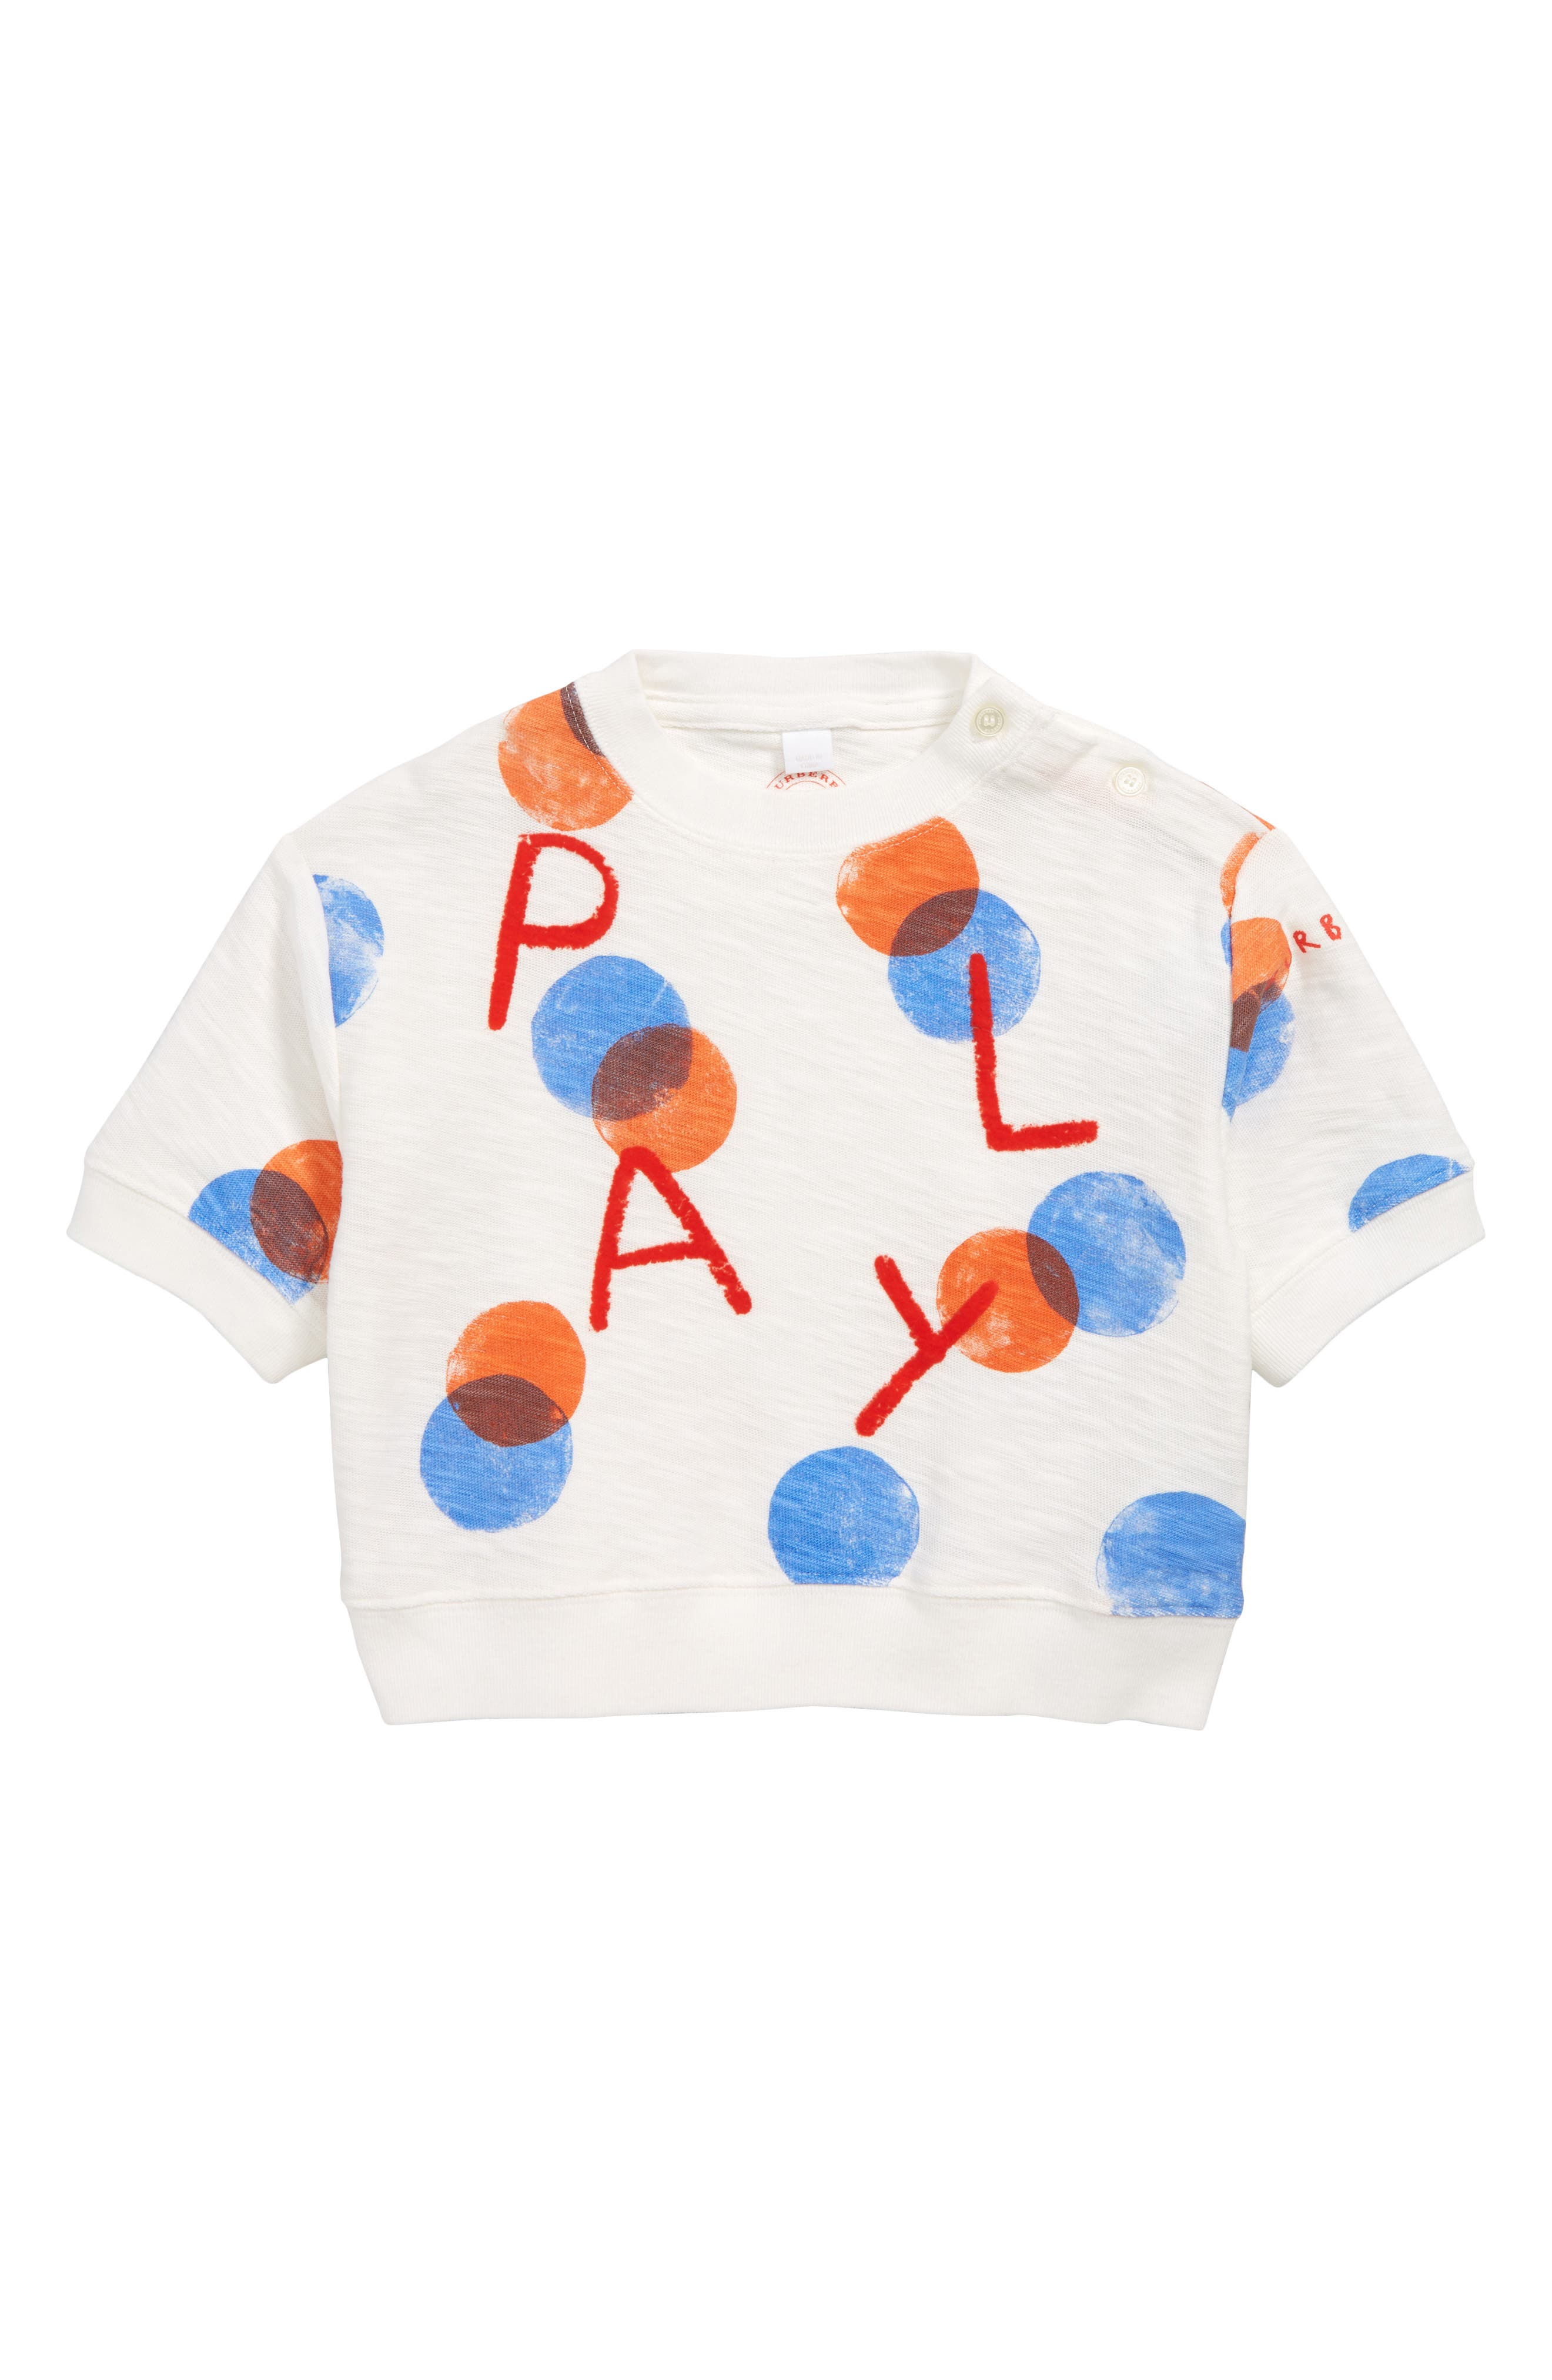 BURBERRY, Play Print Sweater, Main thumbnail 1, color, WHITE